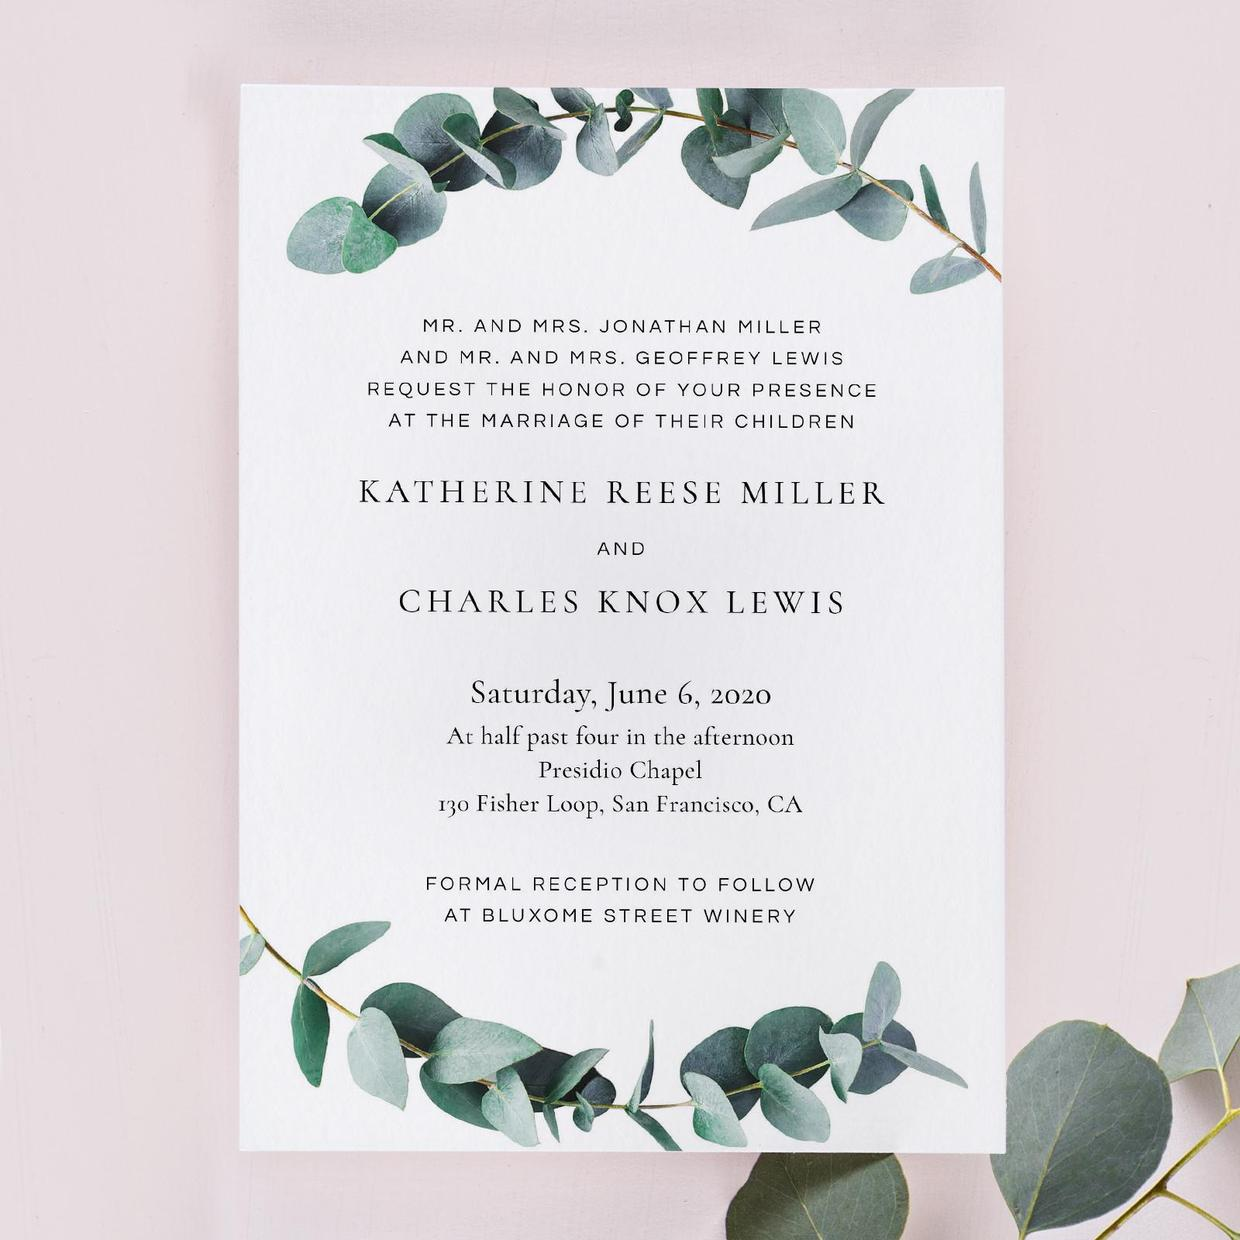 Sample Invitations For Wedding: Wedding Invitation Wording Examples In Every Style